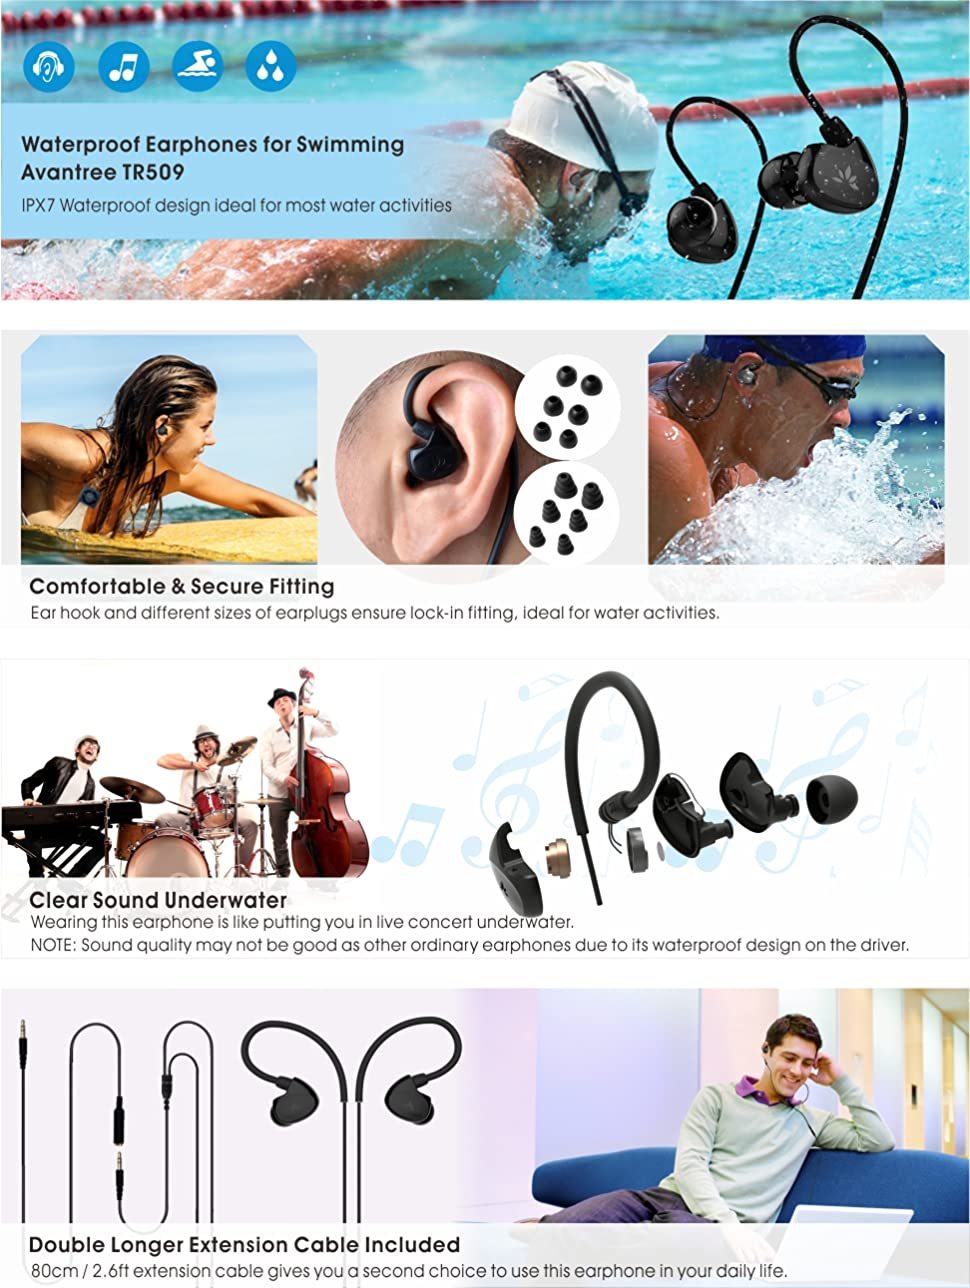 efdfb33dde1 Avantree Secure Fit Waterproof Earbuds for Swimming, Headphones for Running  / Runners, Sports, Diving, Surfing, IPX7, Short Cord with Ear Hook and 6  Pair ...